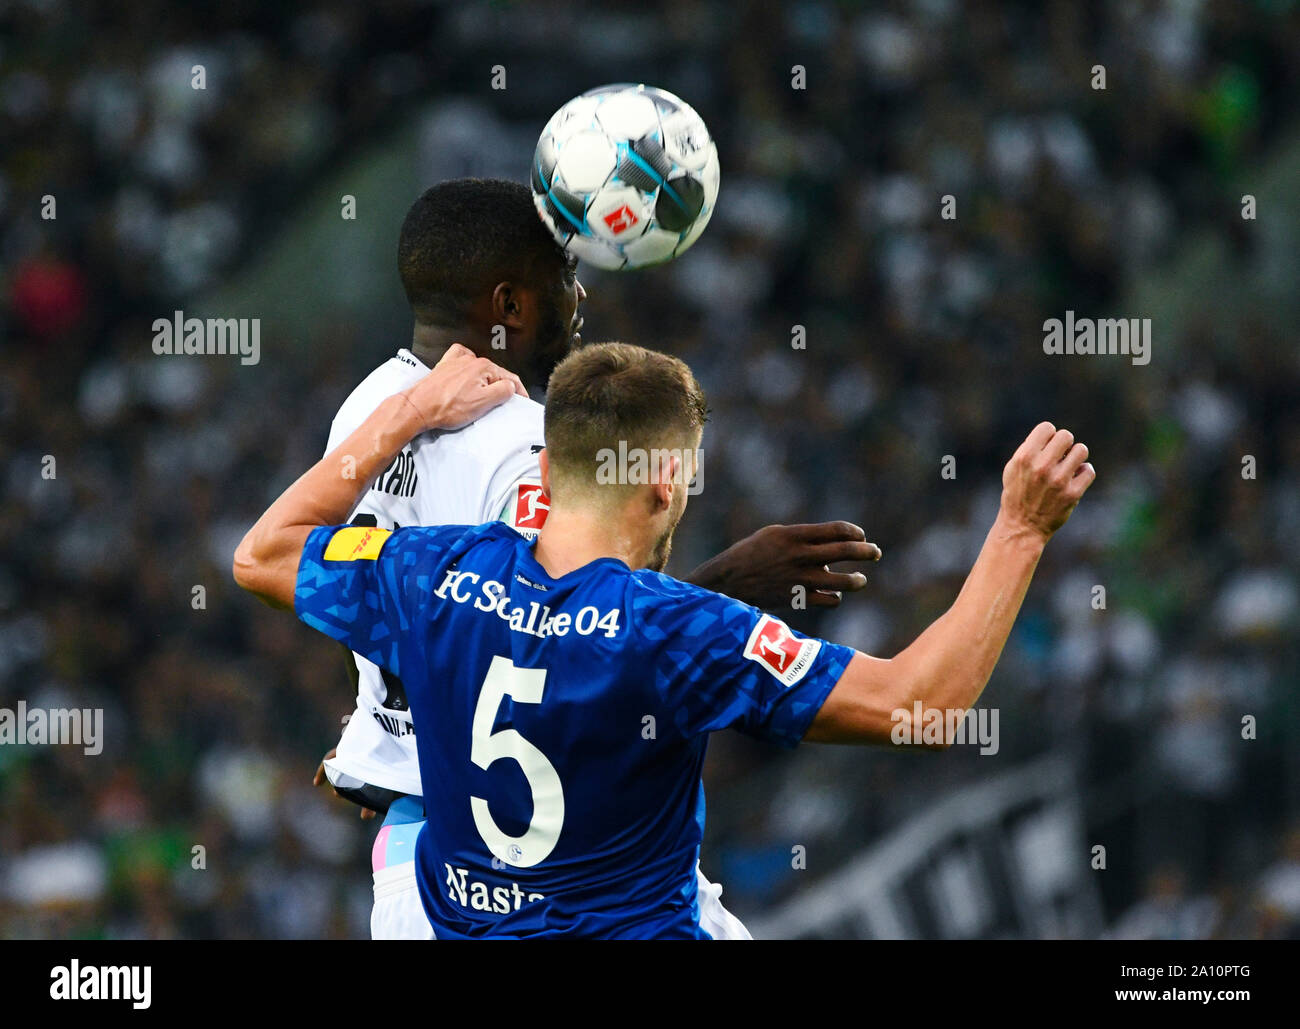 Nastasic High Resolution Stock Photography and Images - Alamy